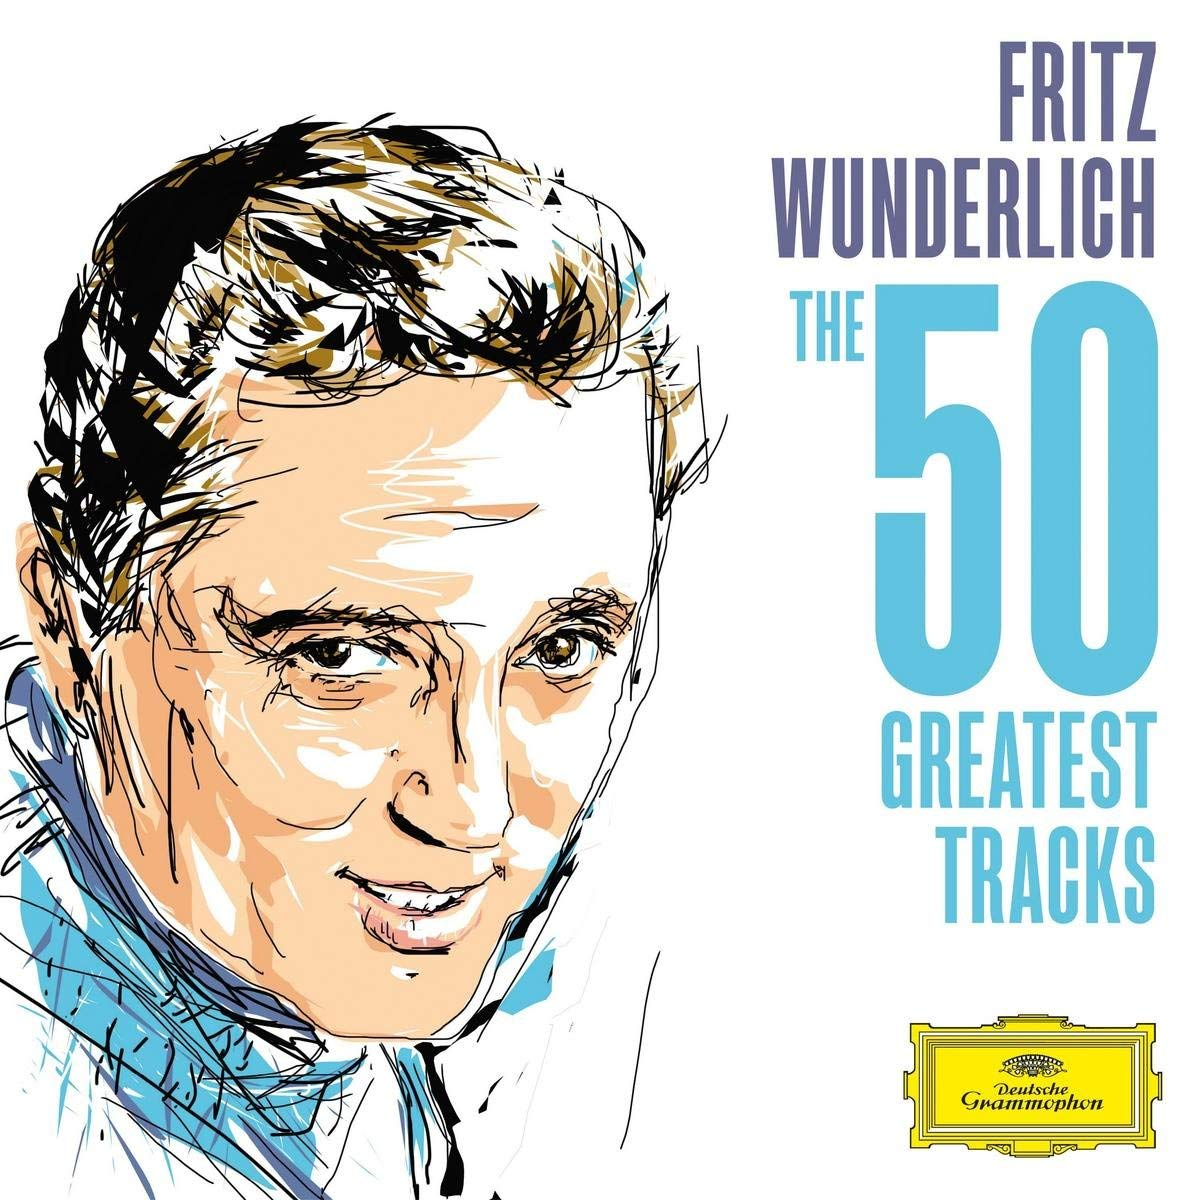 Fritz Wunderlich the 50 greatest tracks